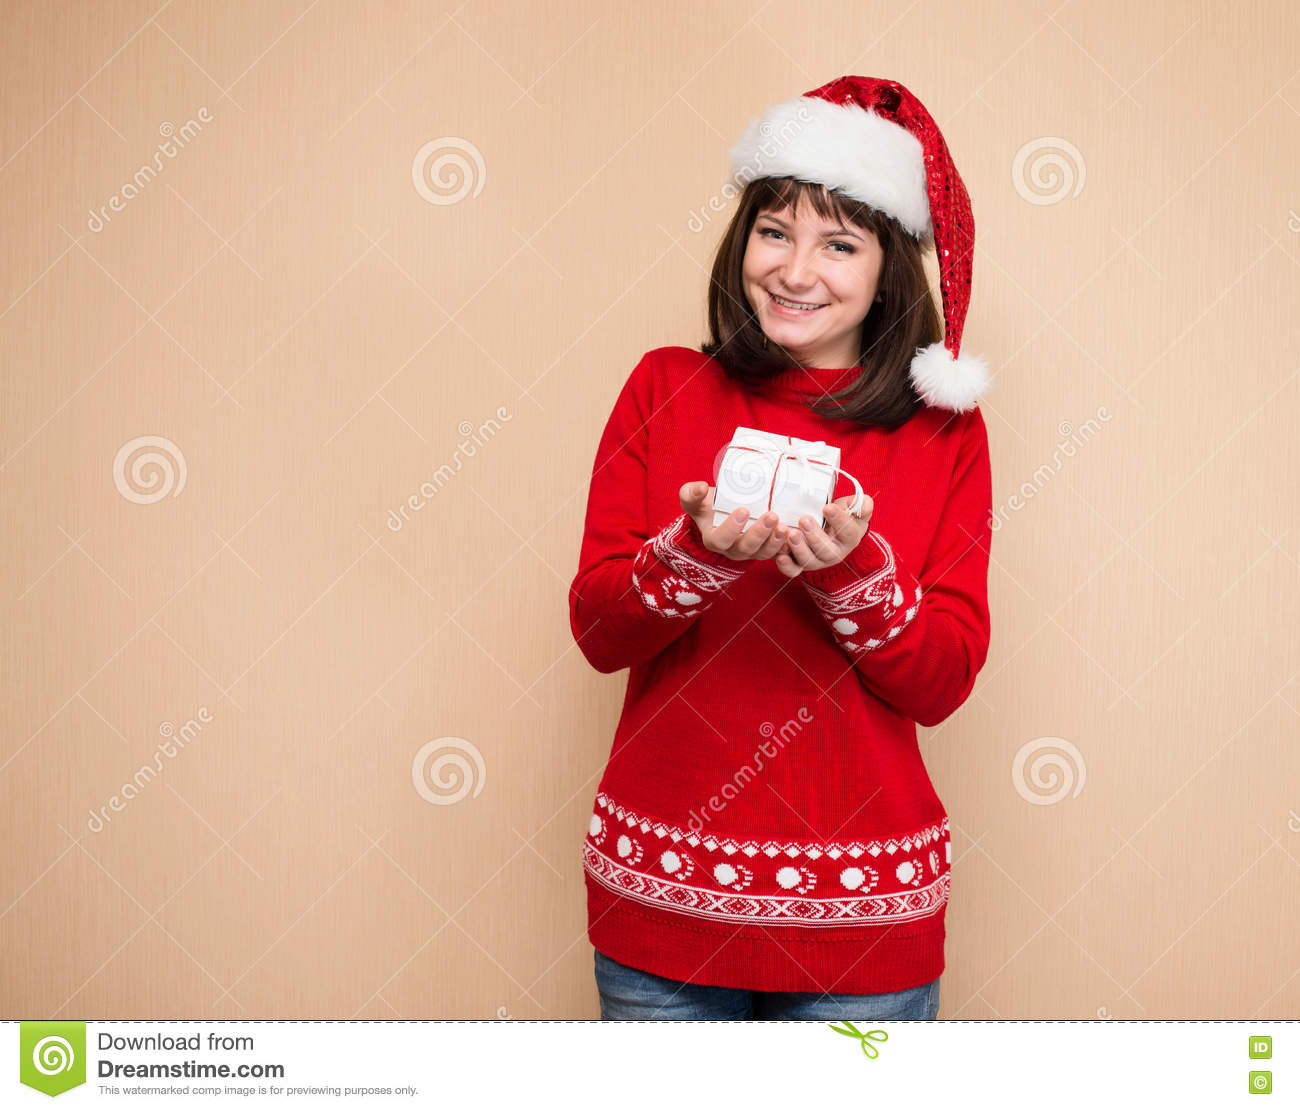 Santa Girl Holding Christmas Gift. Young Happy Woman In